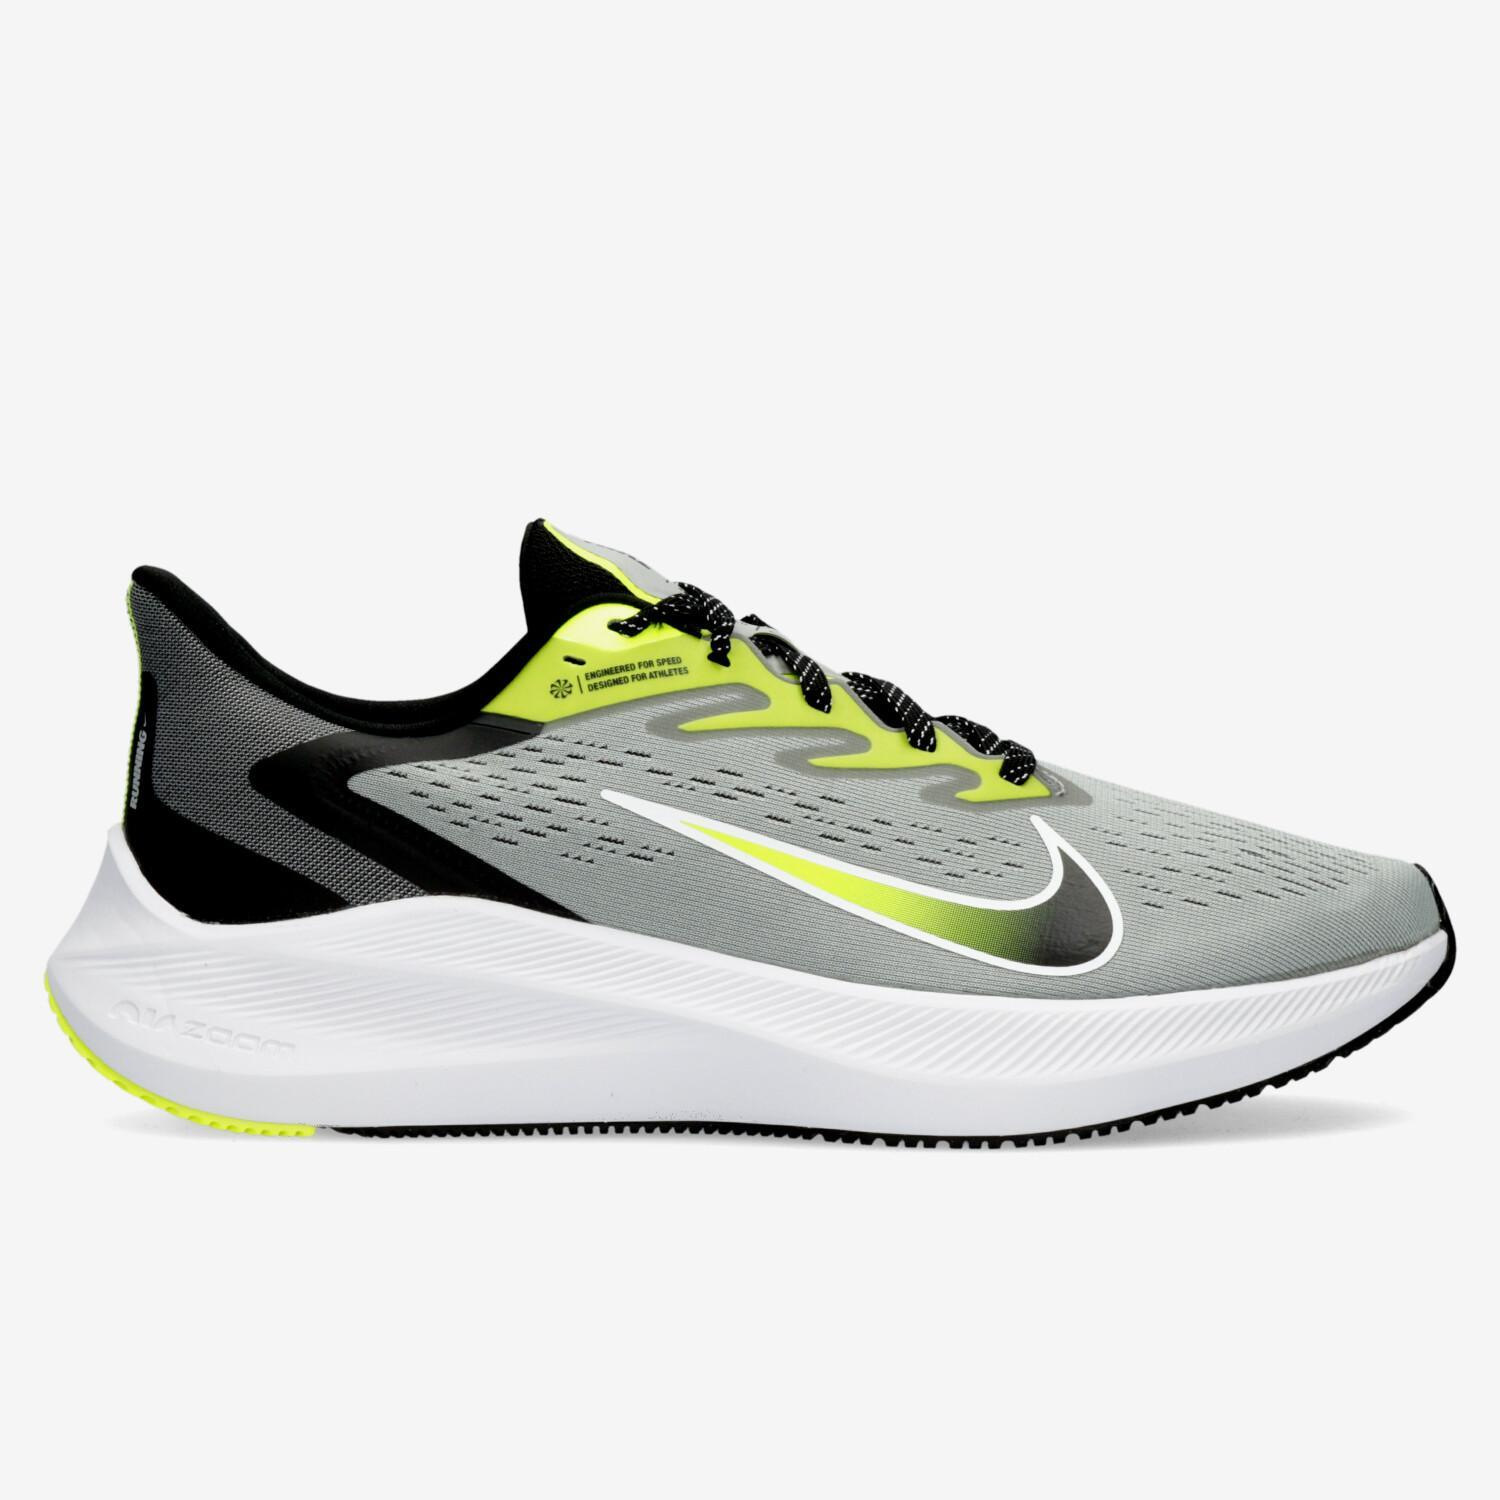 Nike Air Zoom Winflo 7 - Gris - Zapatillas Running Hombre